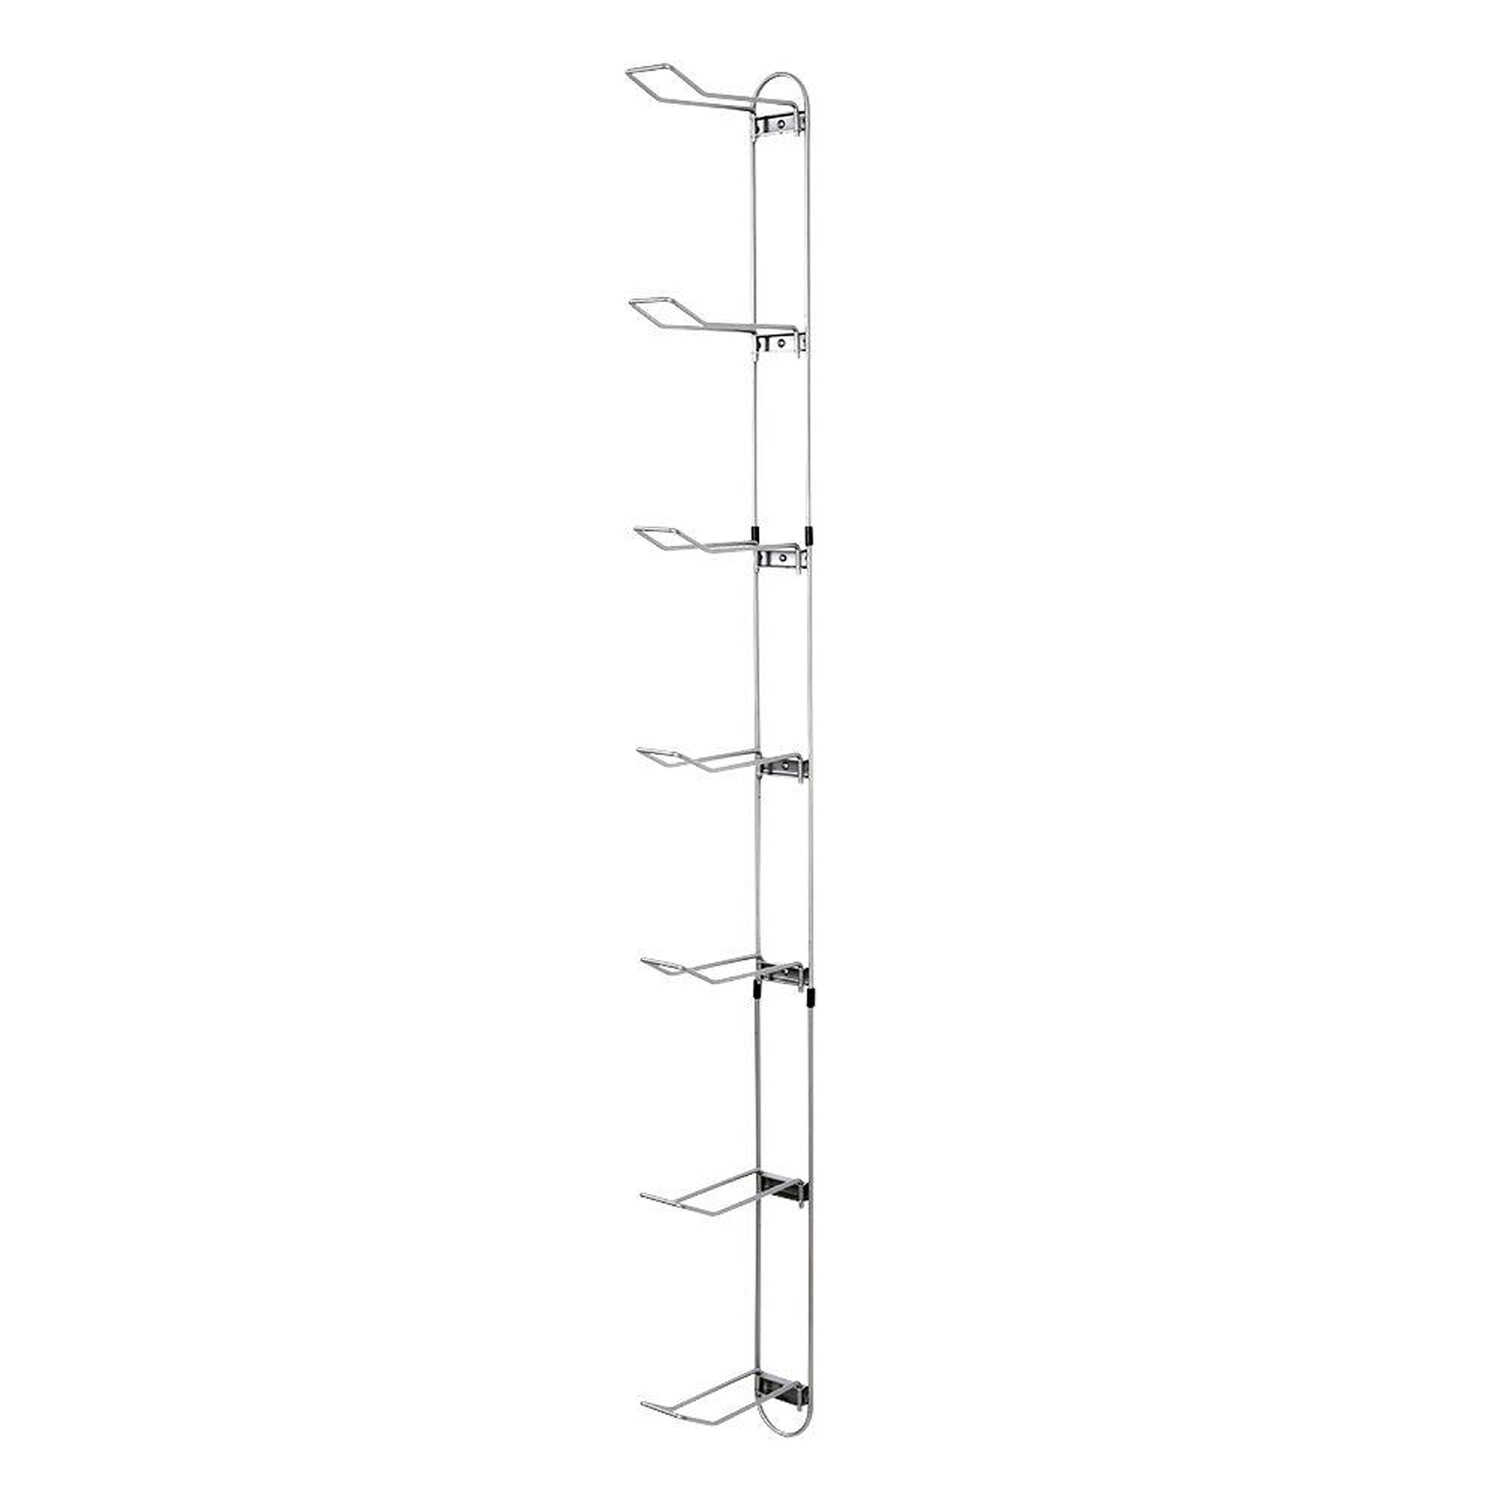 John Sterling  63-3/16 in. H x 3-1/2 in. W x 8-7/8 in. D Steel  Sports Ball Storage Rack  Up to 20 l